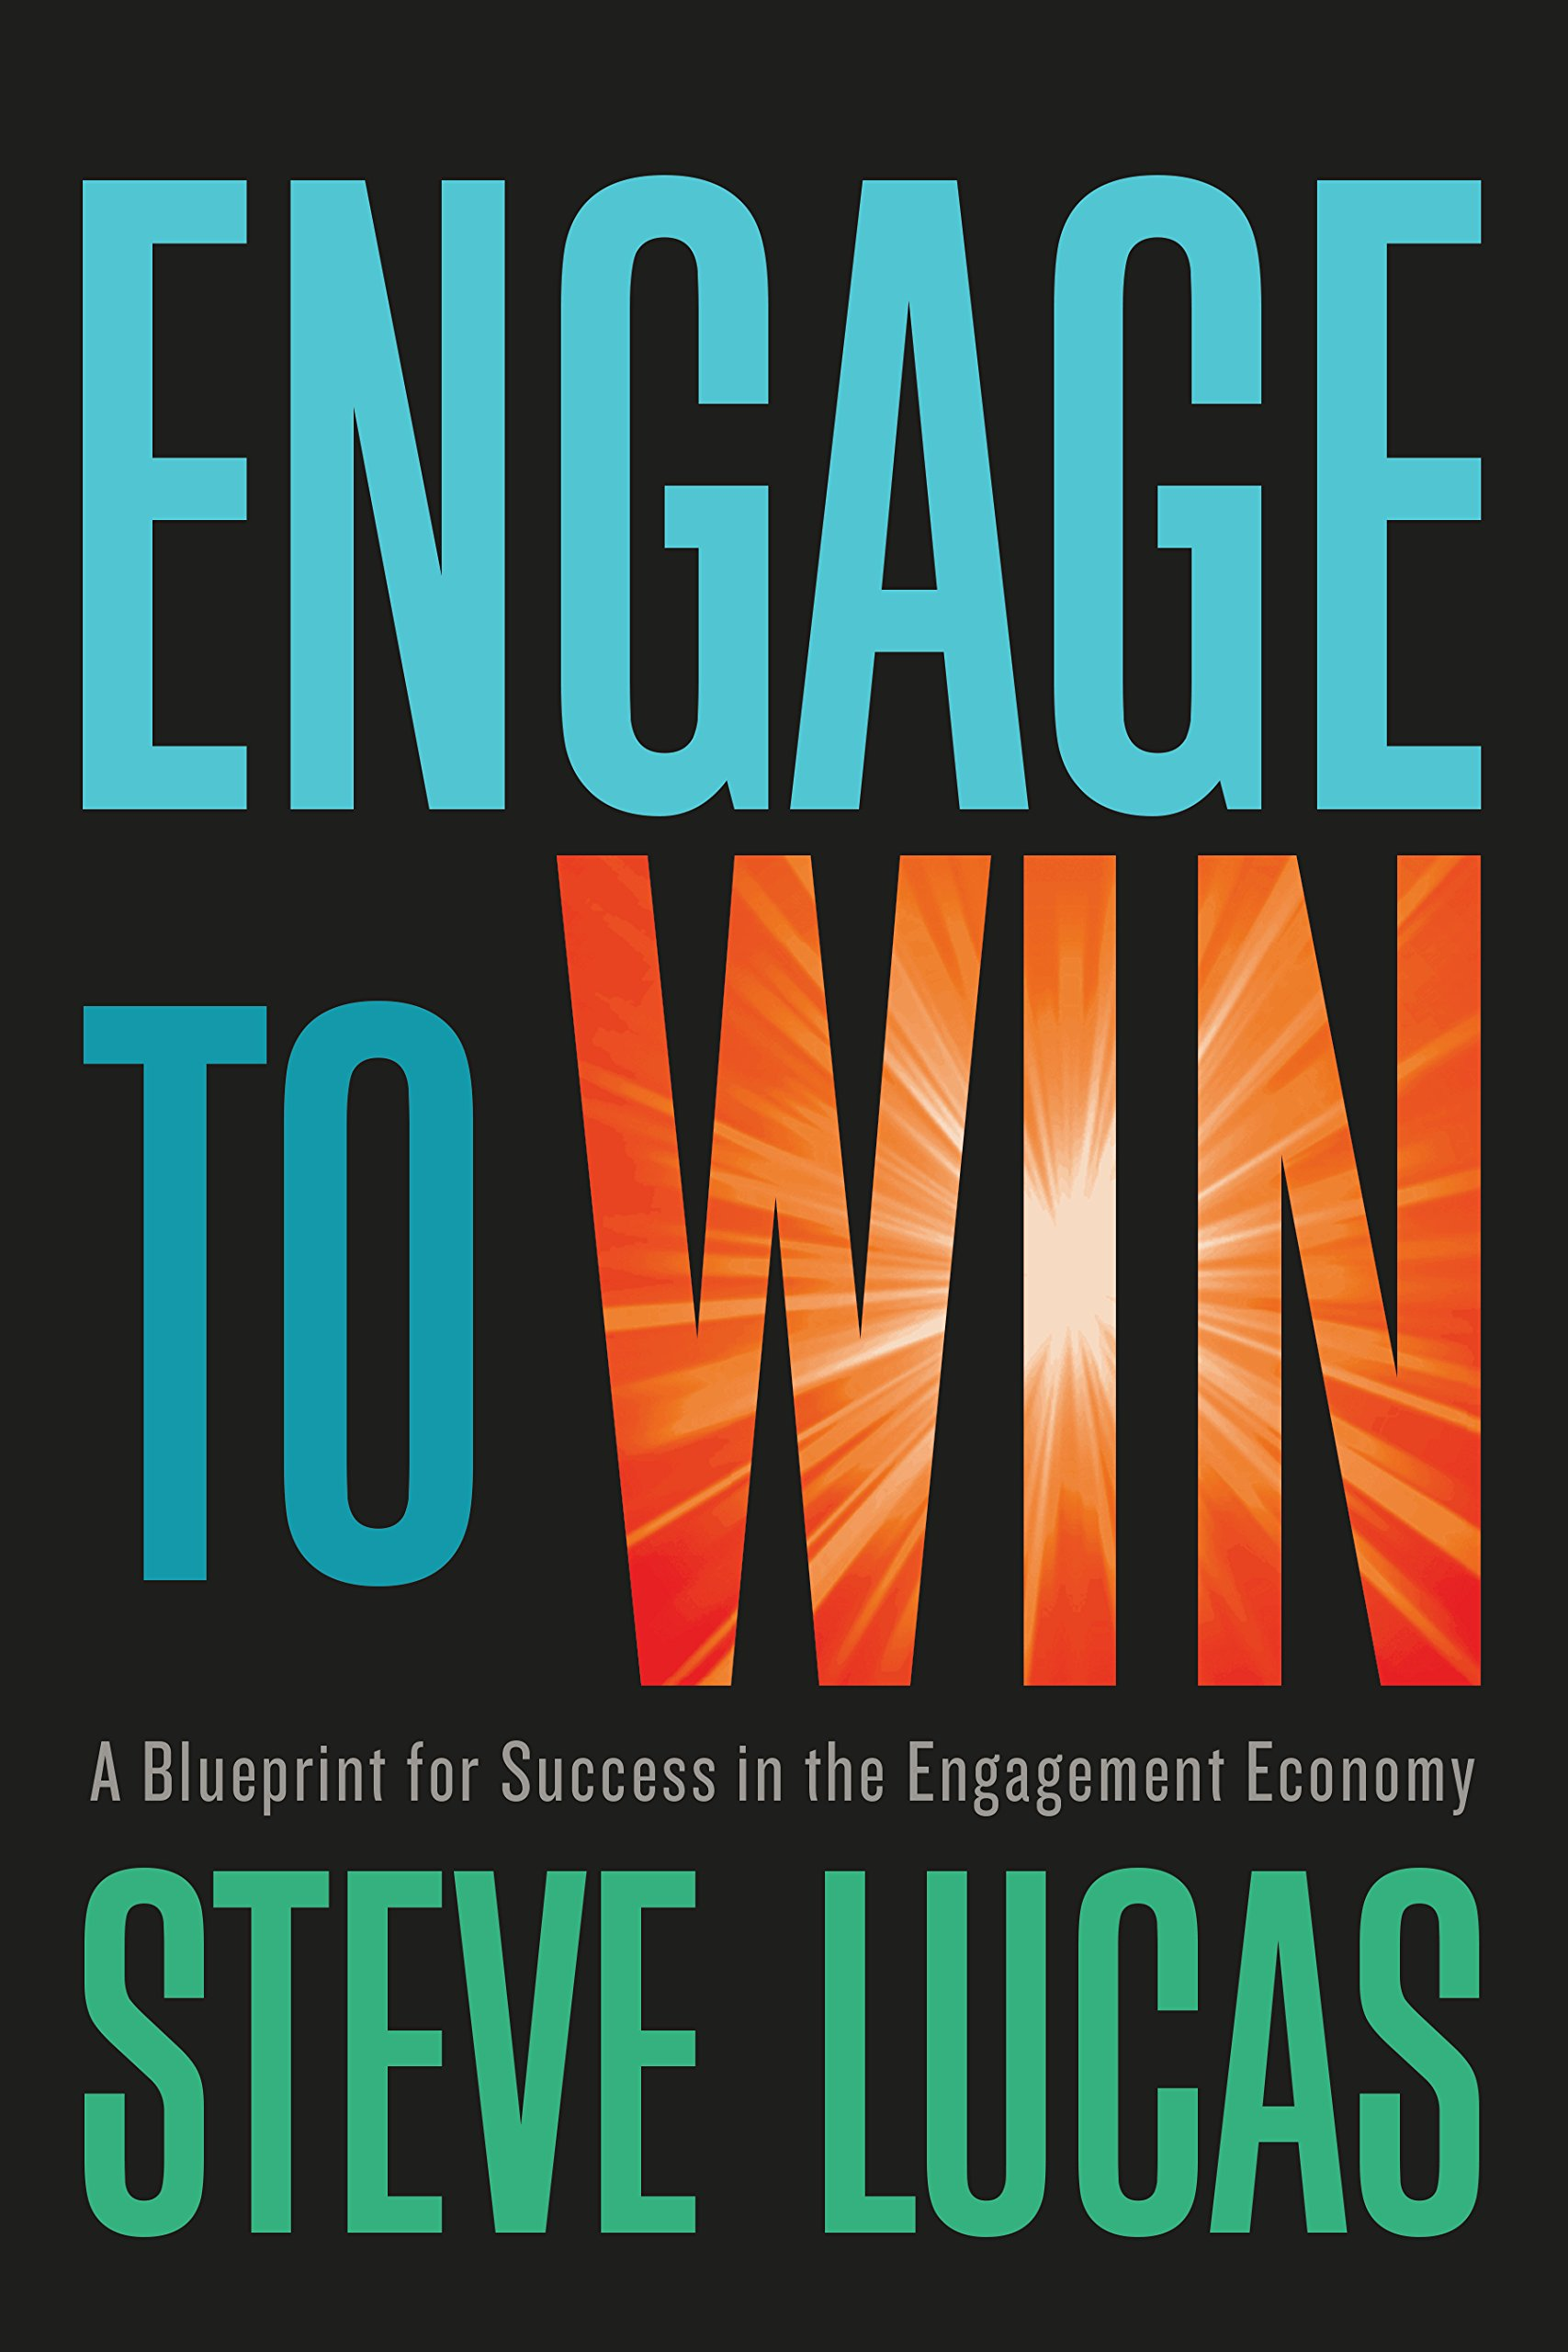 Engage to win a blueprint for success in the engagement economy engage to win a blueprint for success in the engagement economy steve lucas 9781626344983 amazon books malvernweather Image collections